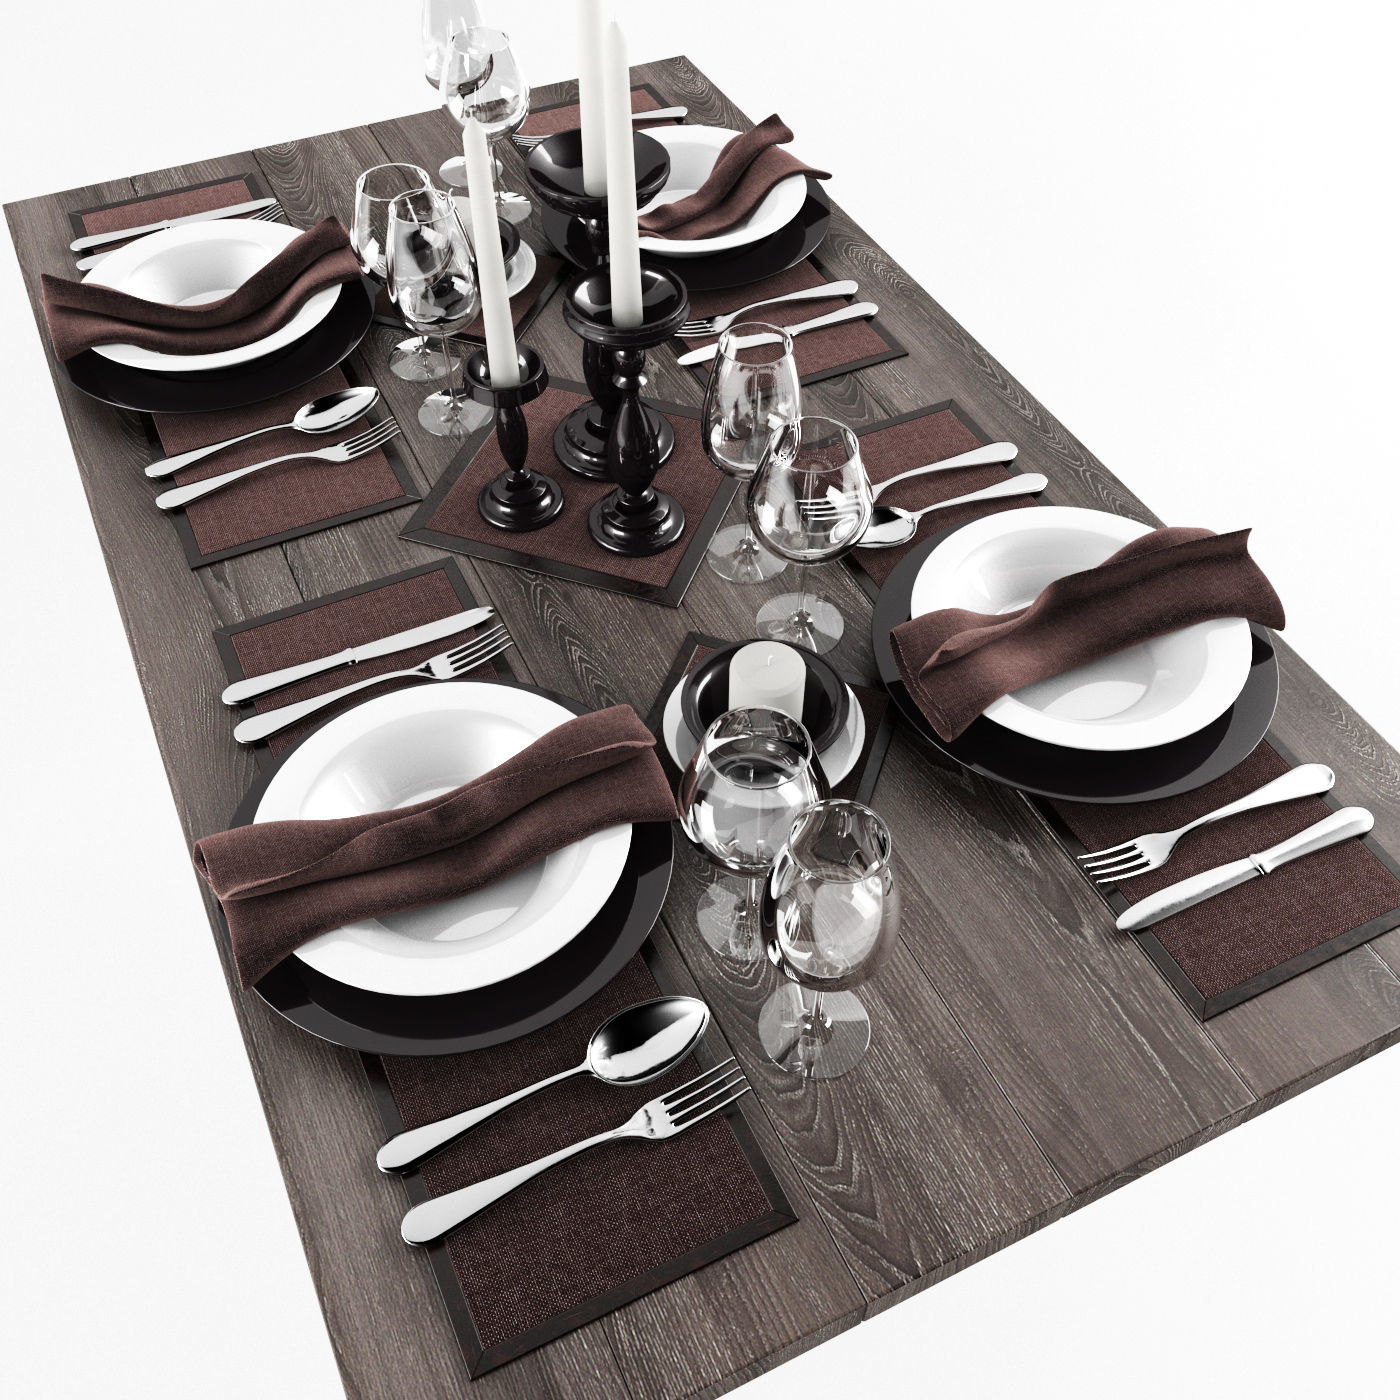 Table serving 1